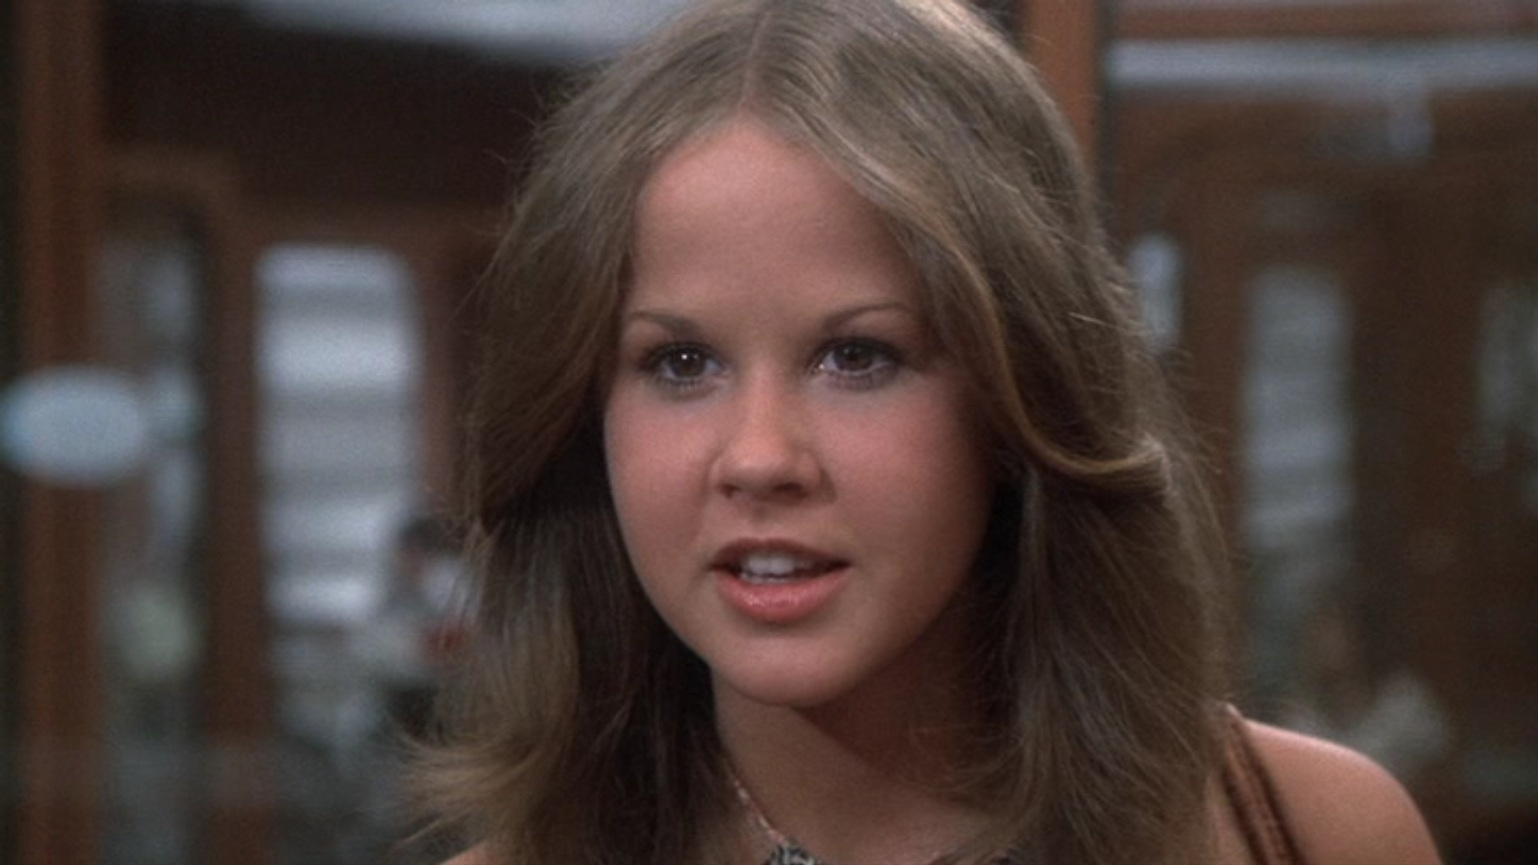 Happyotter: EXORCIST II: THE HERETIC (1977)